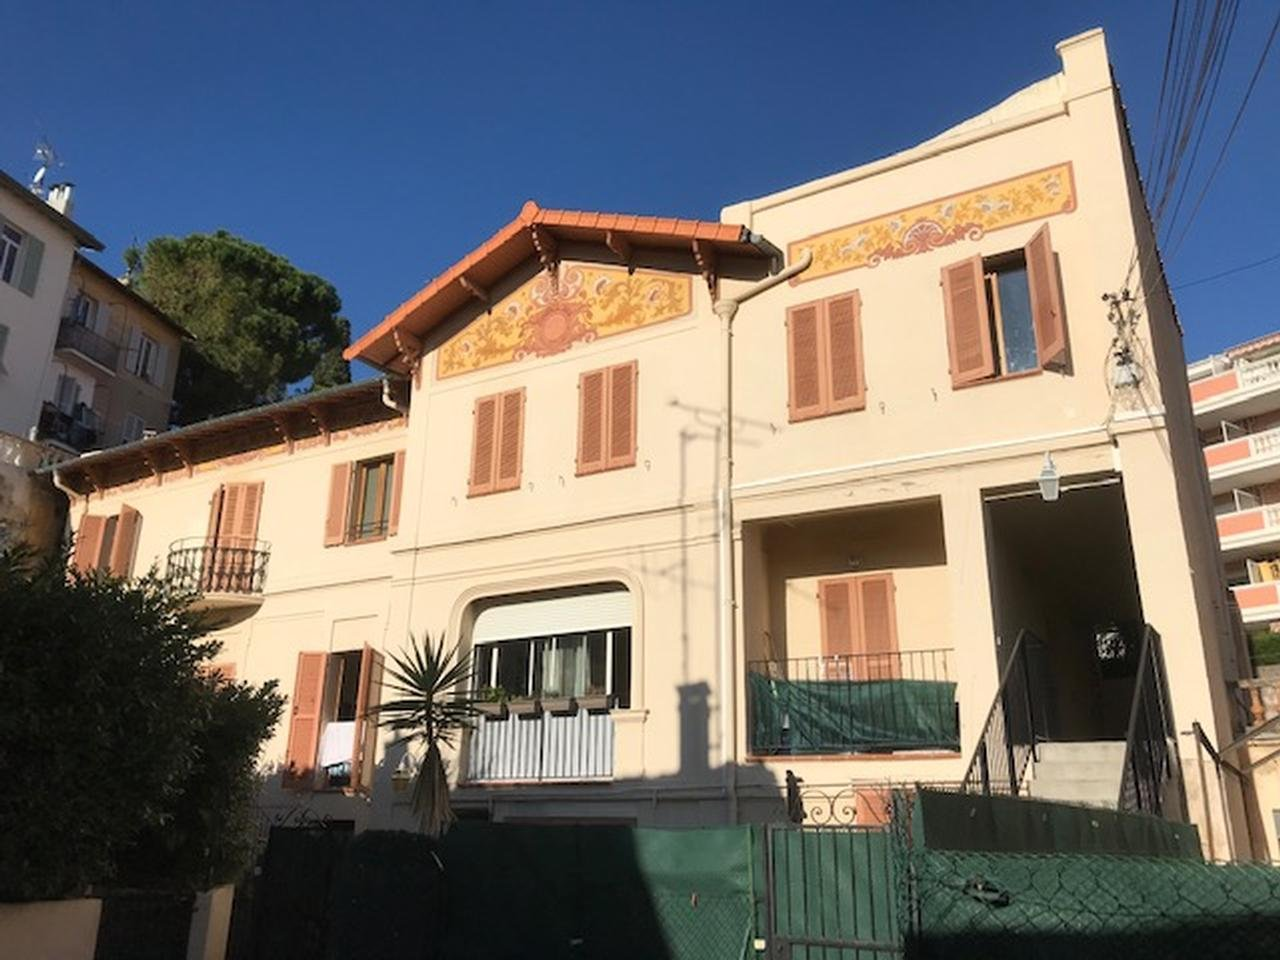 Appartement  2 Rooms 40.84m2  for sale   167000 €